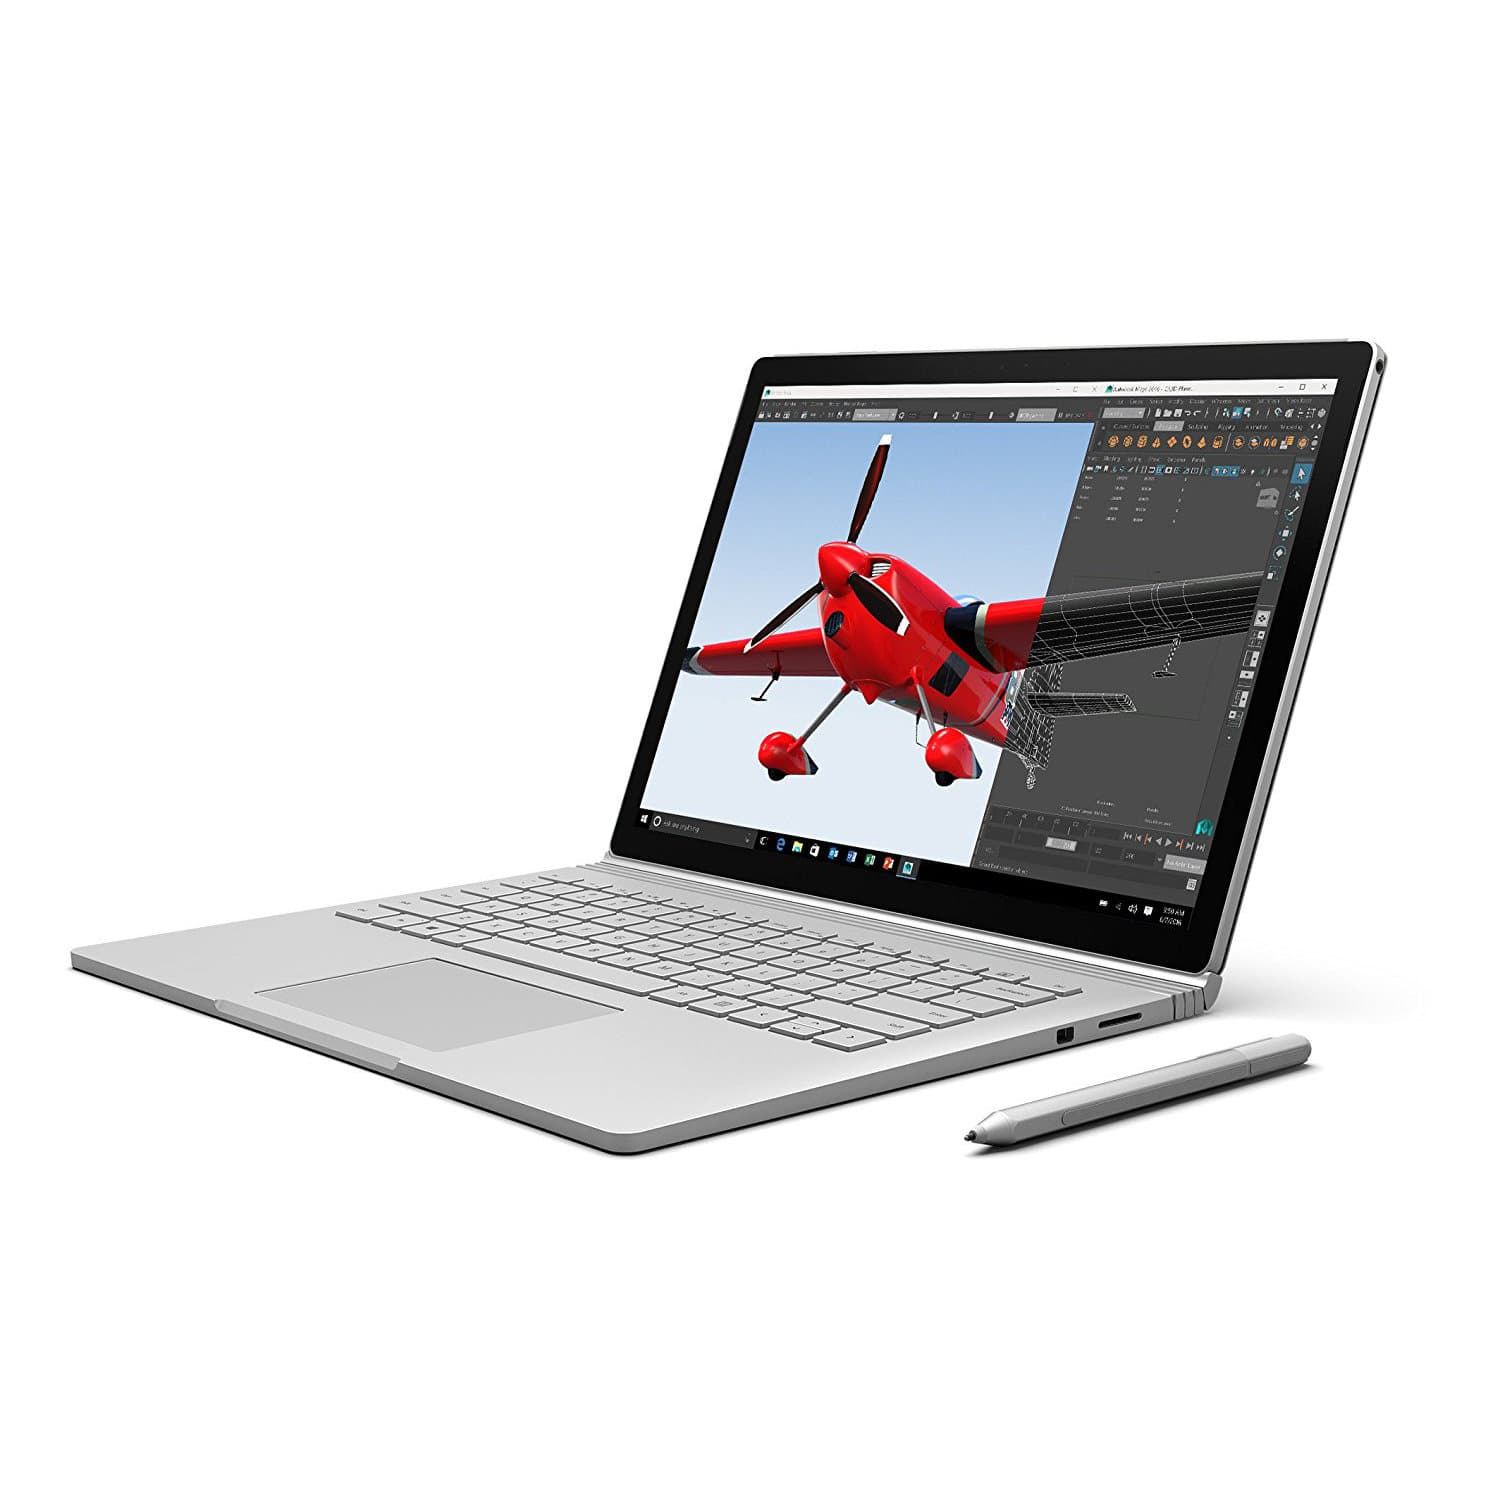 "Microsoft Surface Book SW6-00001 Core i7 6600U (2.60 GHz) 16GB Memory 512 GB SSD NVIDIA GeForce Graphics 13.5"" 3000 x 2000 Touchscreen $1250 AC + FS"